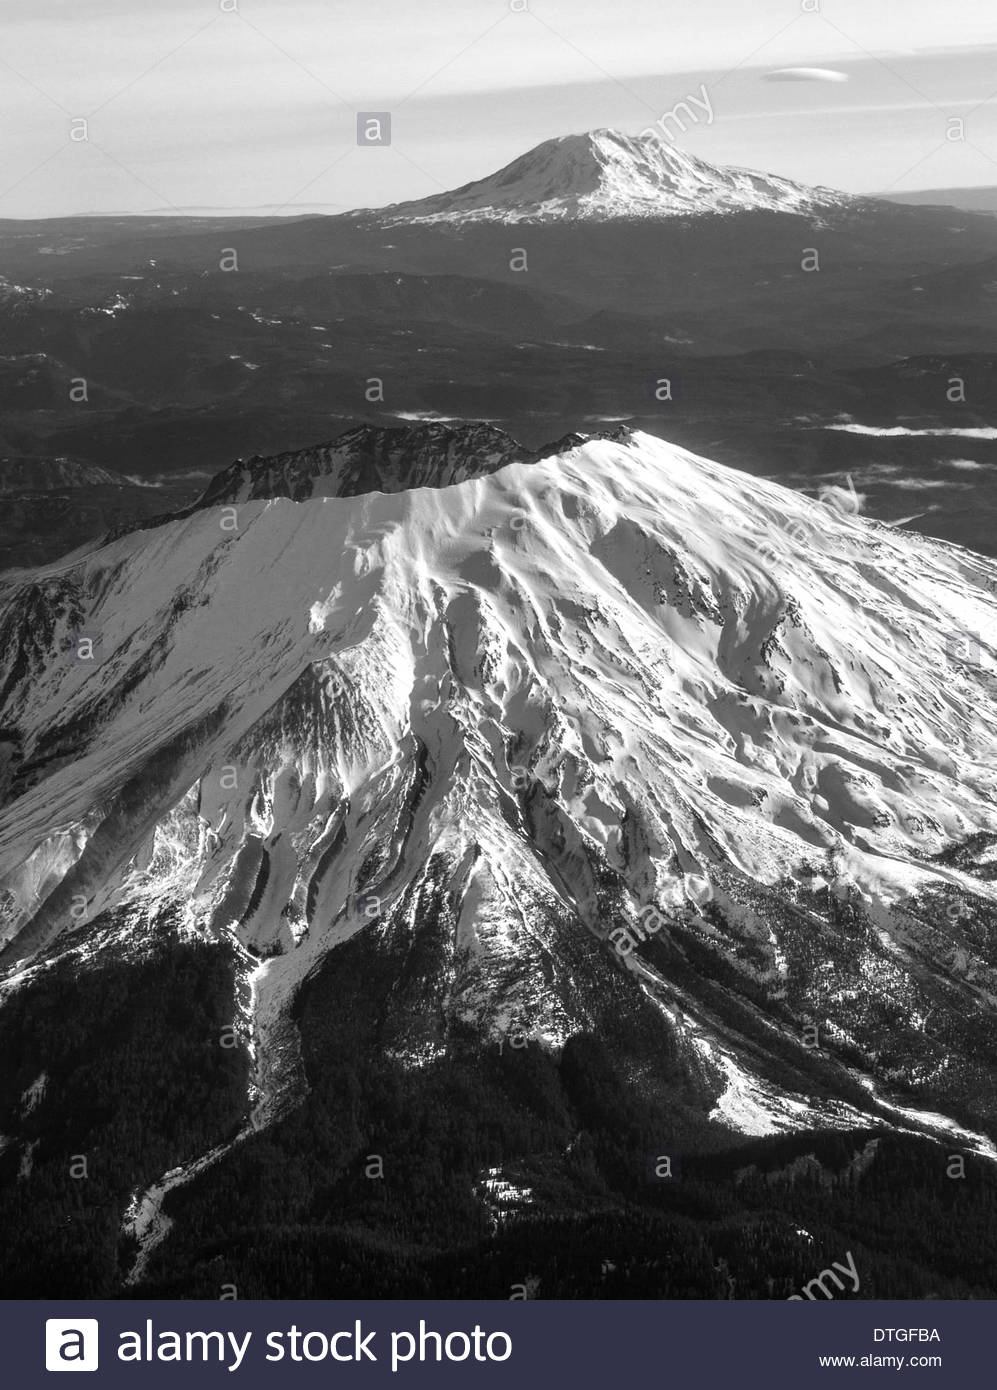 Mount Saint Helens And Mount Adams, Washington, USA - Stock Image